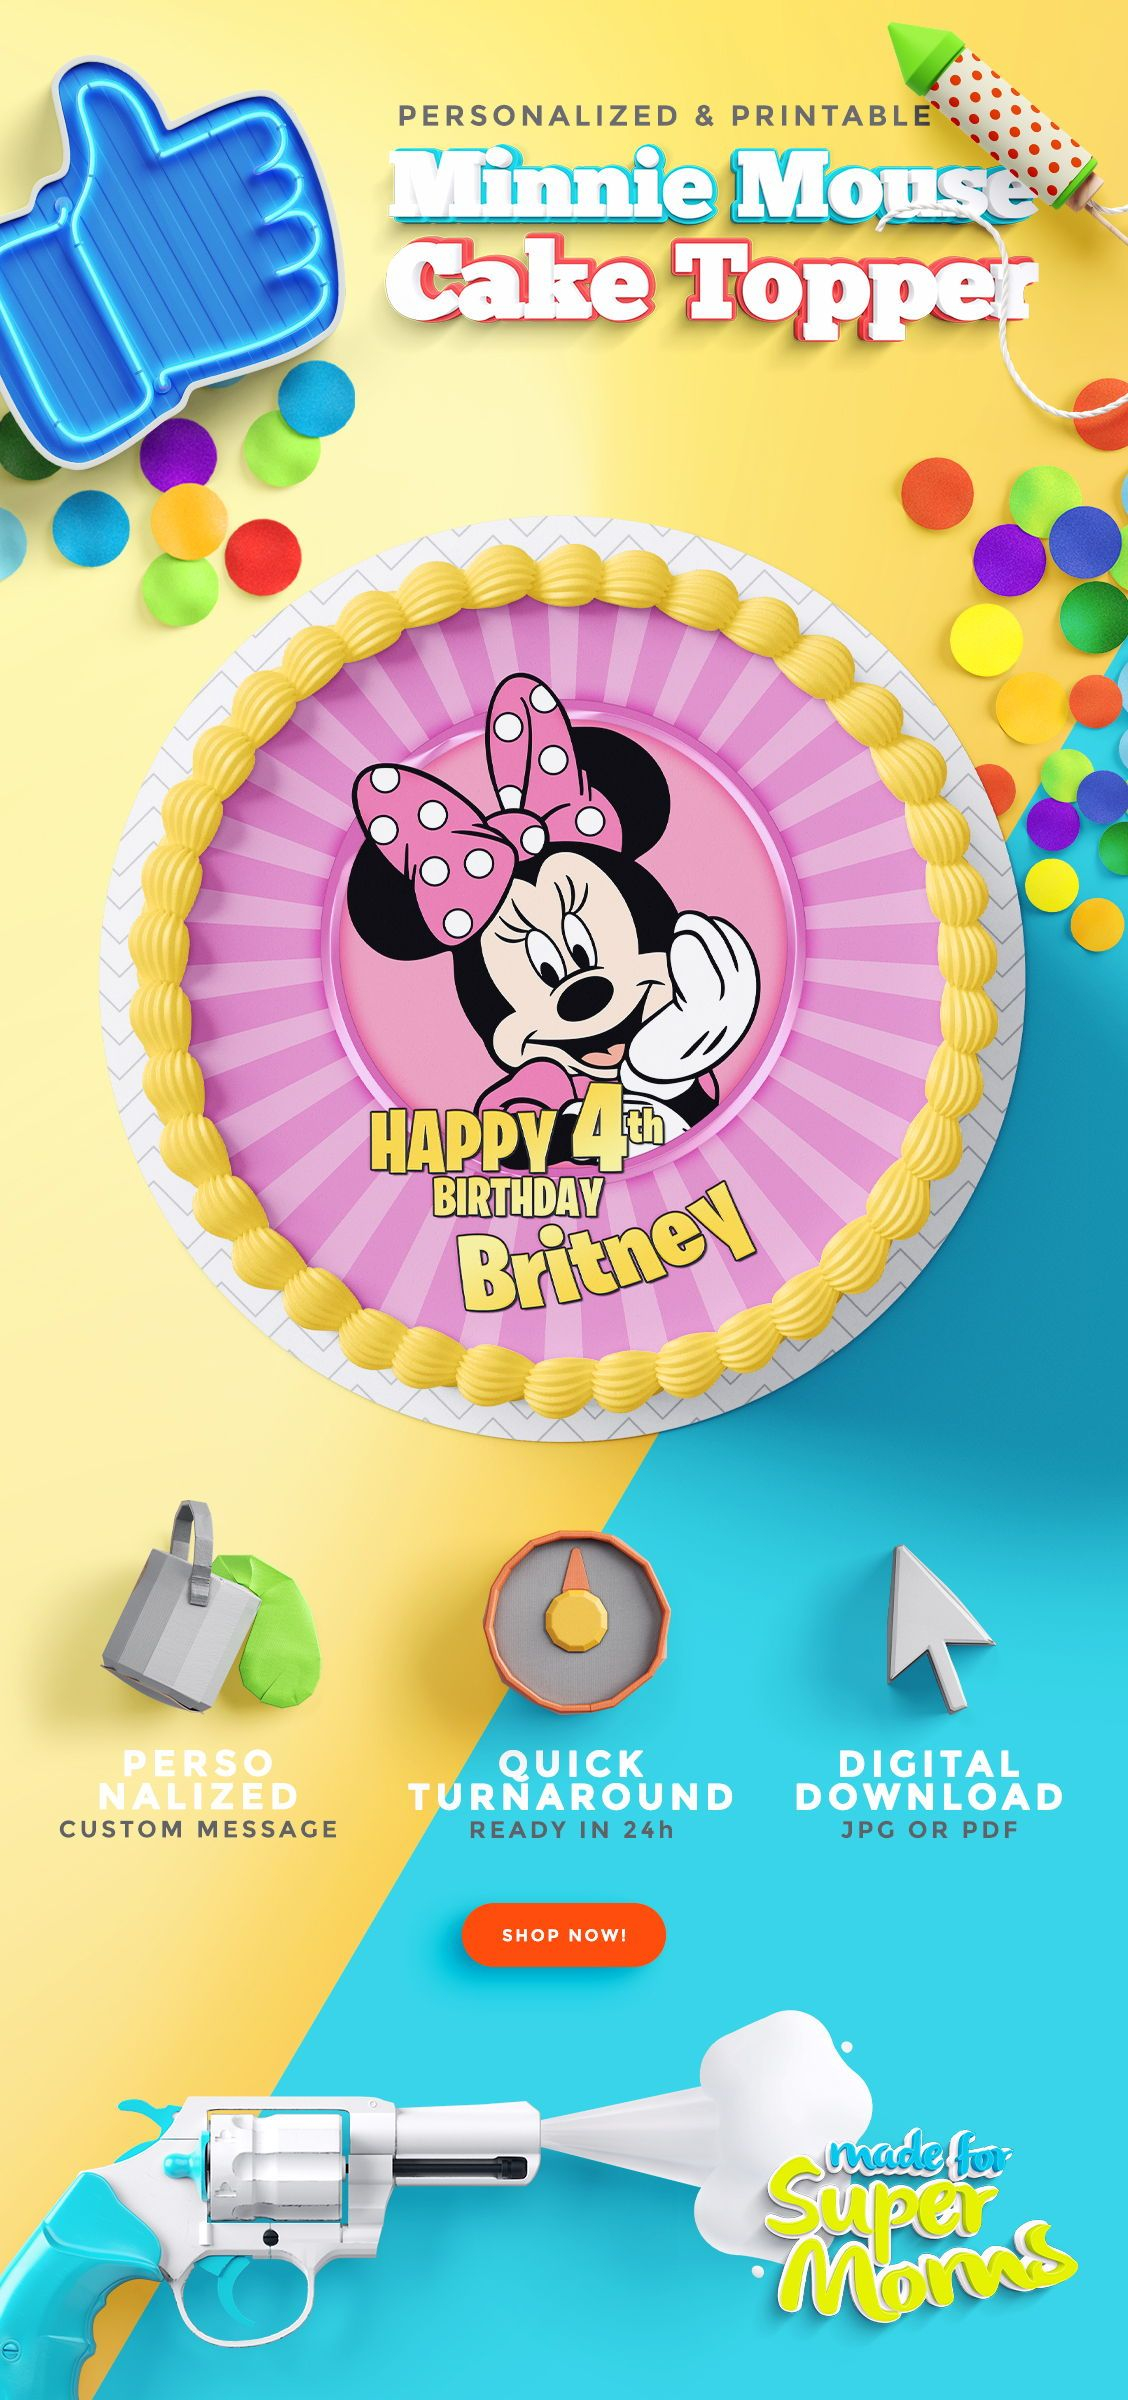 Admirable Minnie Mouse Cake Toppers Minnie Mouse Cake Topper Minnie Mouse Funny Birthday Cards Online Necthendildamsfinfo